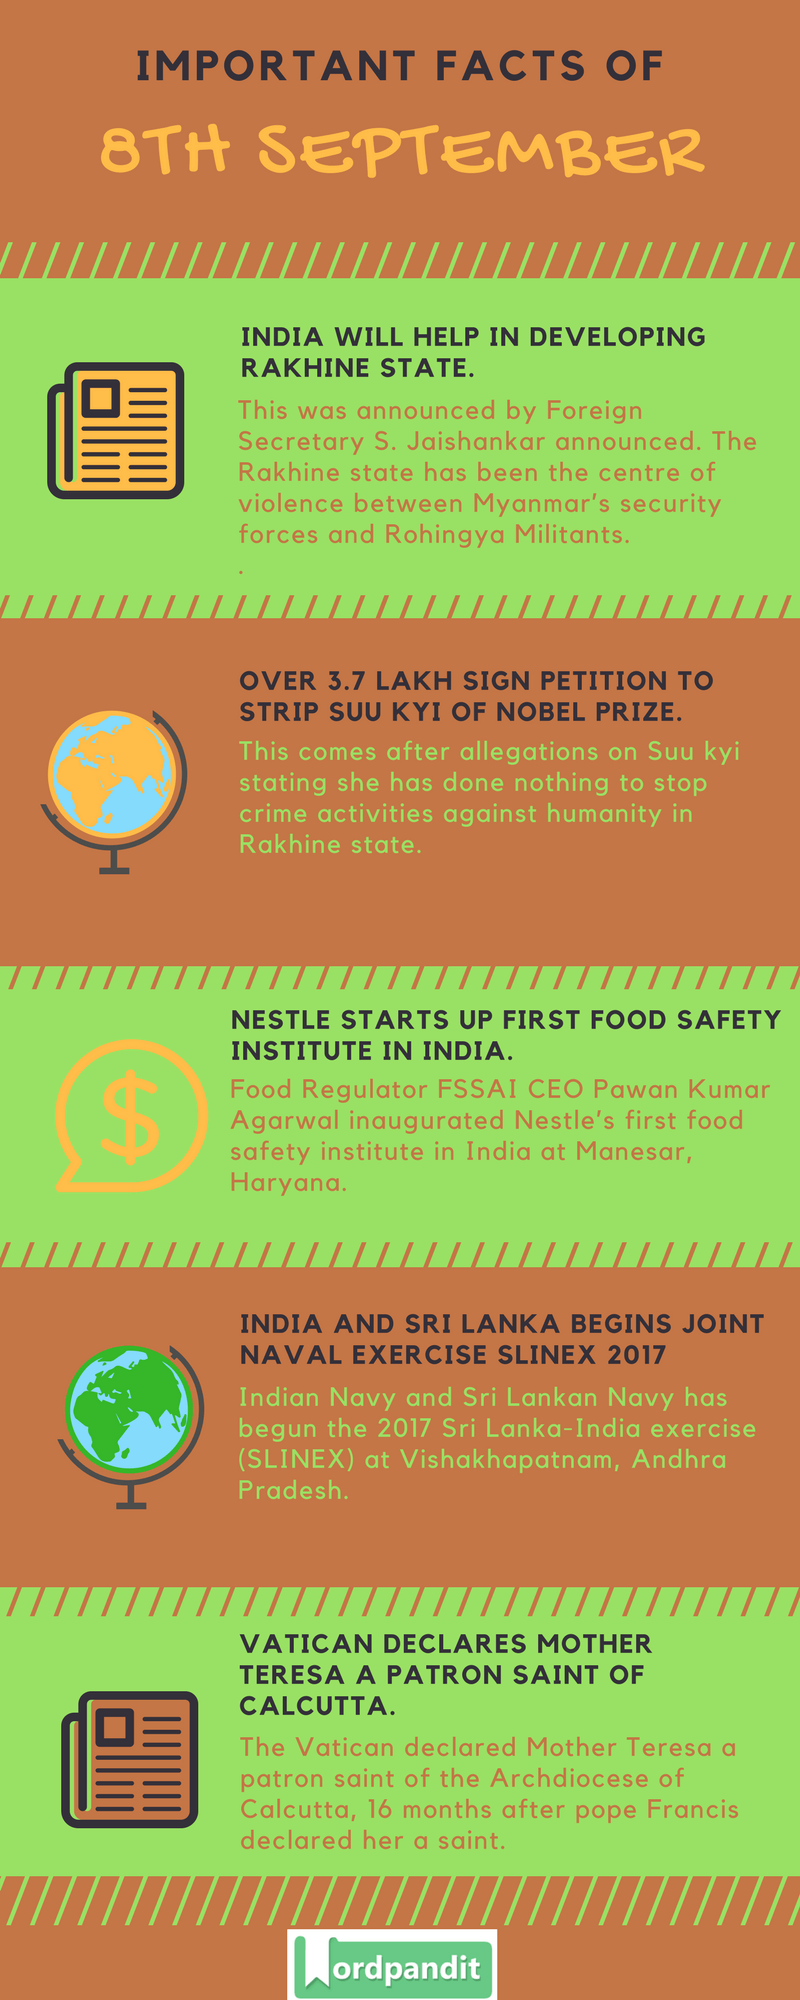 Daily-Current-Affairs-8-september-2017-Current-Affairs-Quiz-september-8-2017-Current-Affairs-Infographic